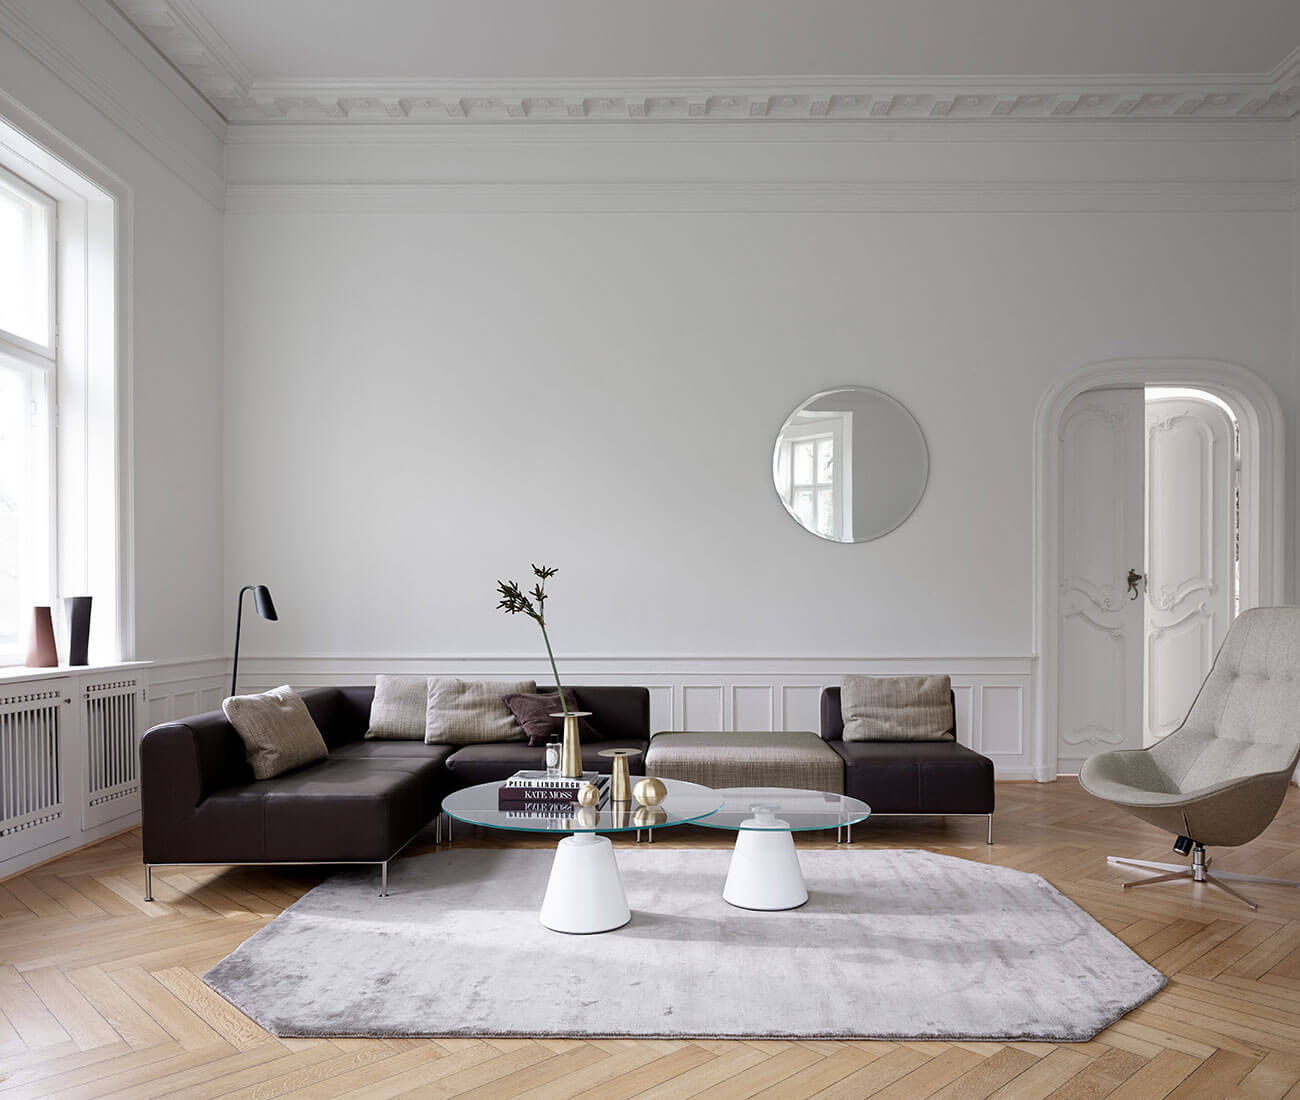 What's your Anders Nørgaard sofa?